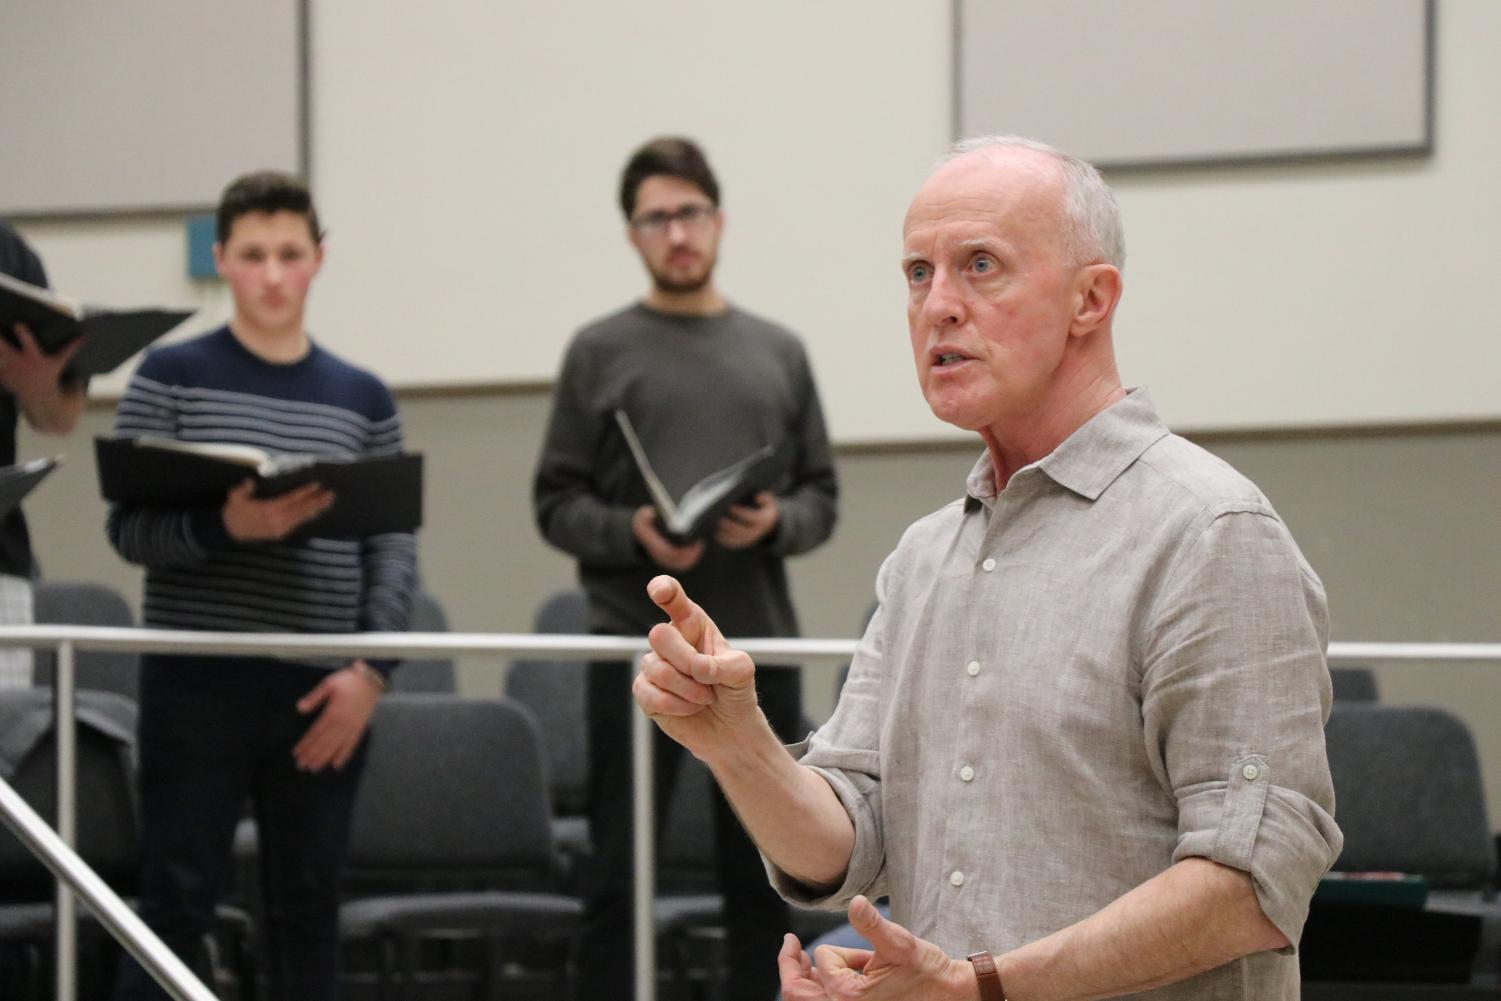 Donald Kendrick, the director of choral activities at Sacramento State, rehearses with the University Choir in preparation for his final concert with the University. The concert will be on Saturday, May 12 at 8 p.m. at the Sacramento Community Center Theater.